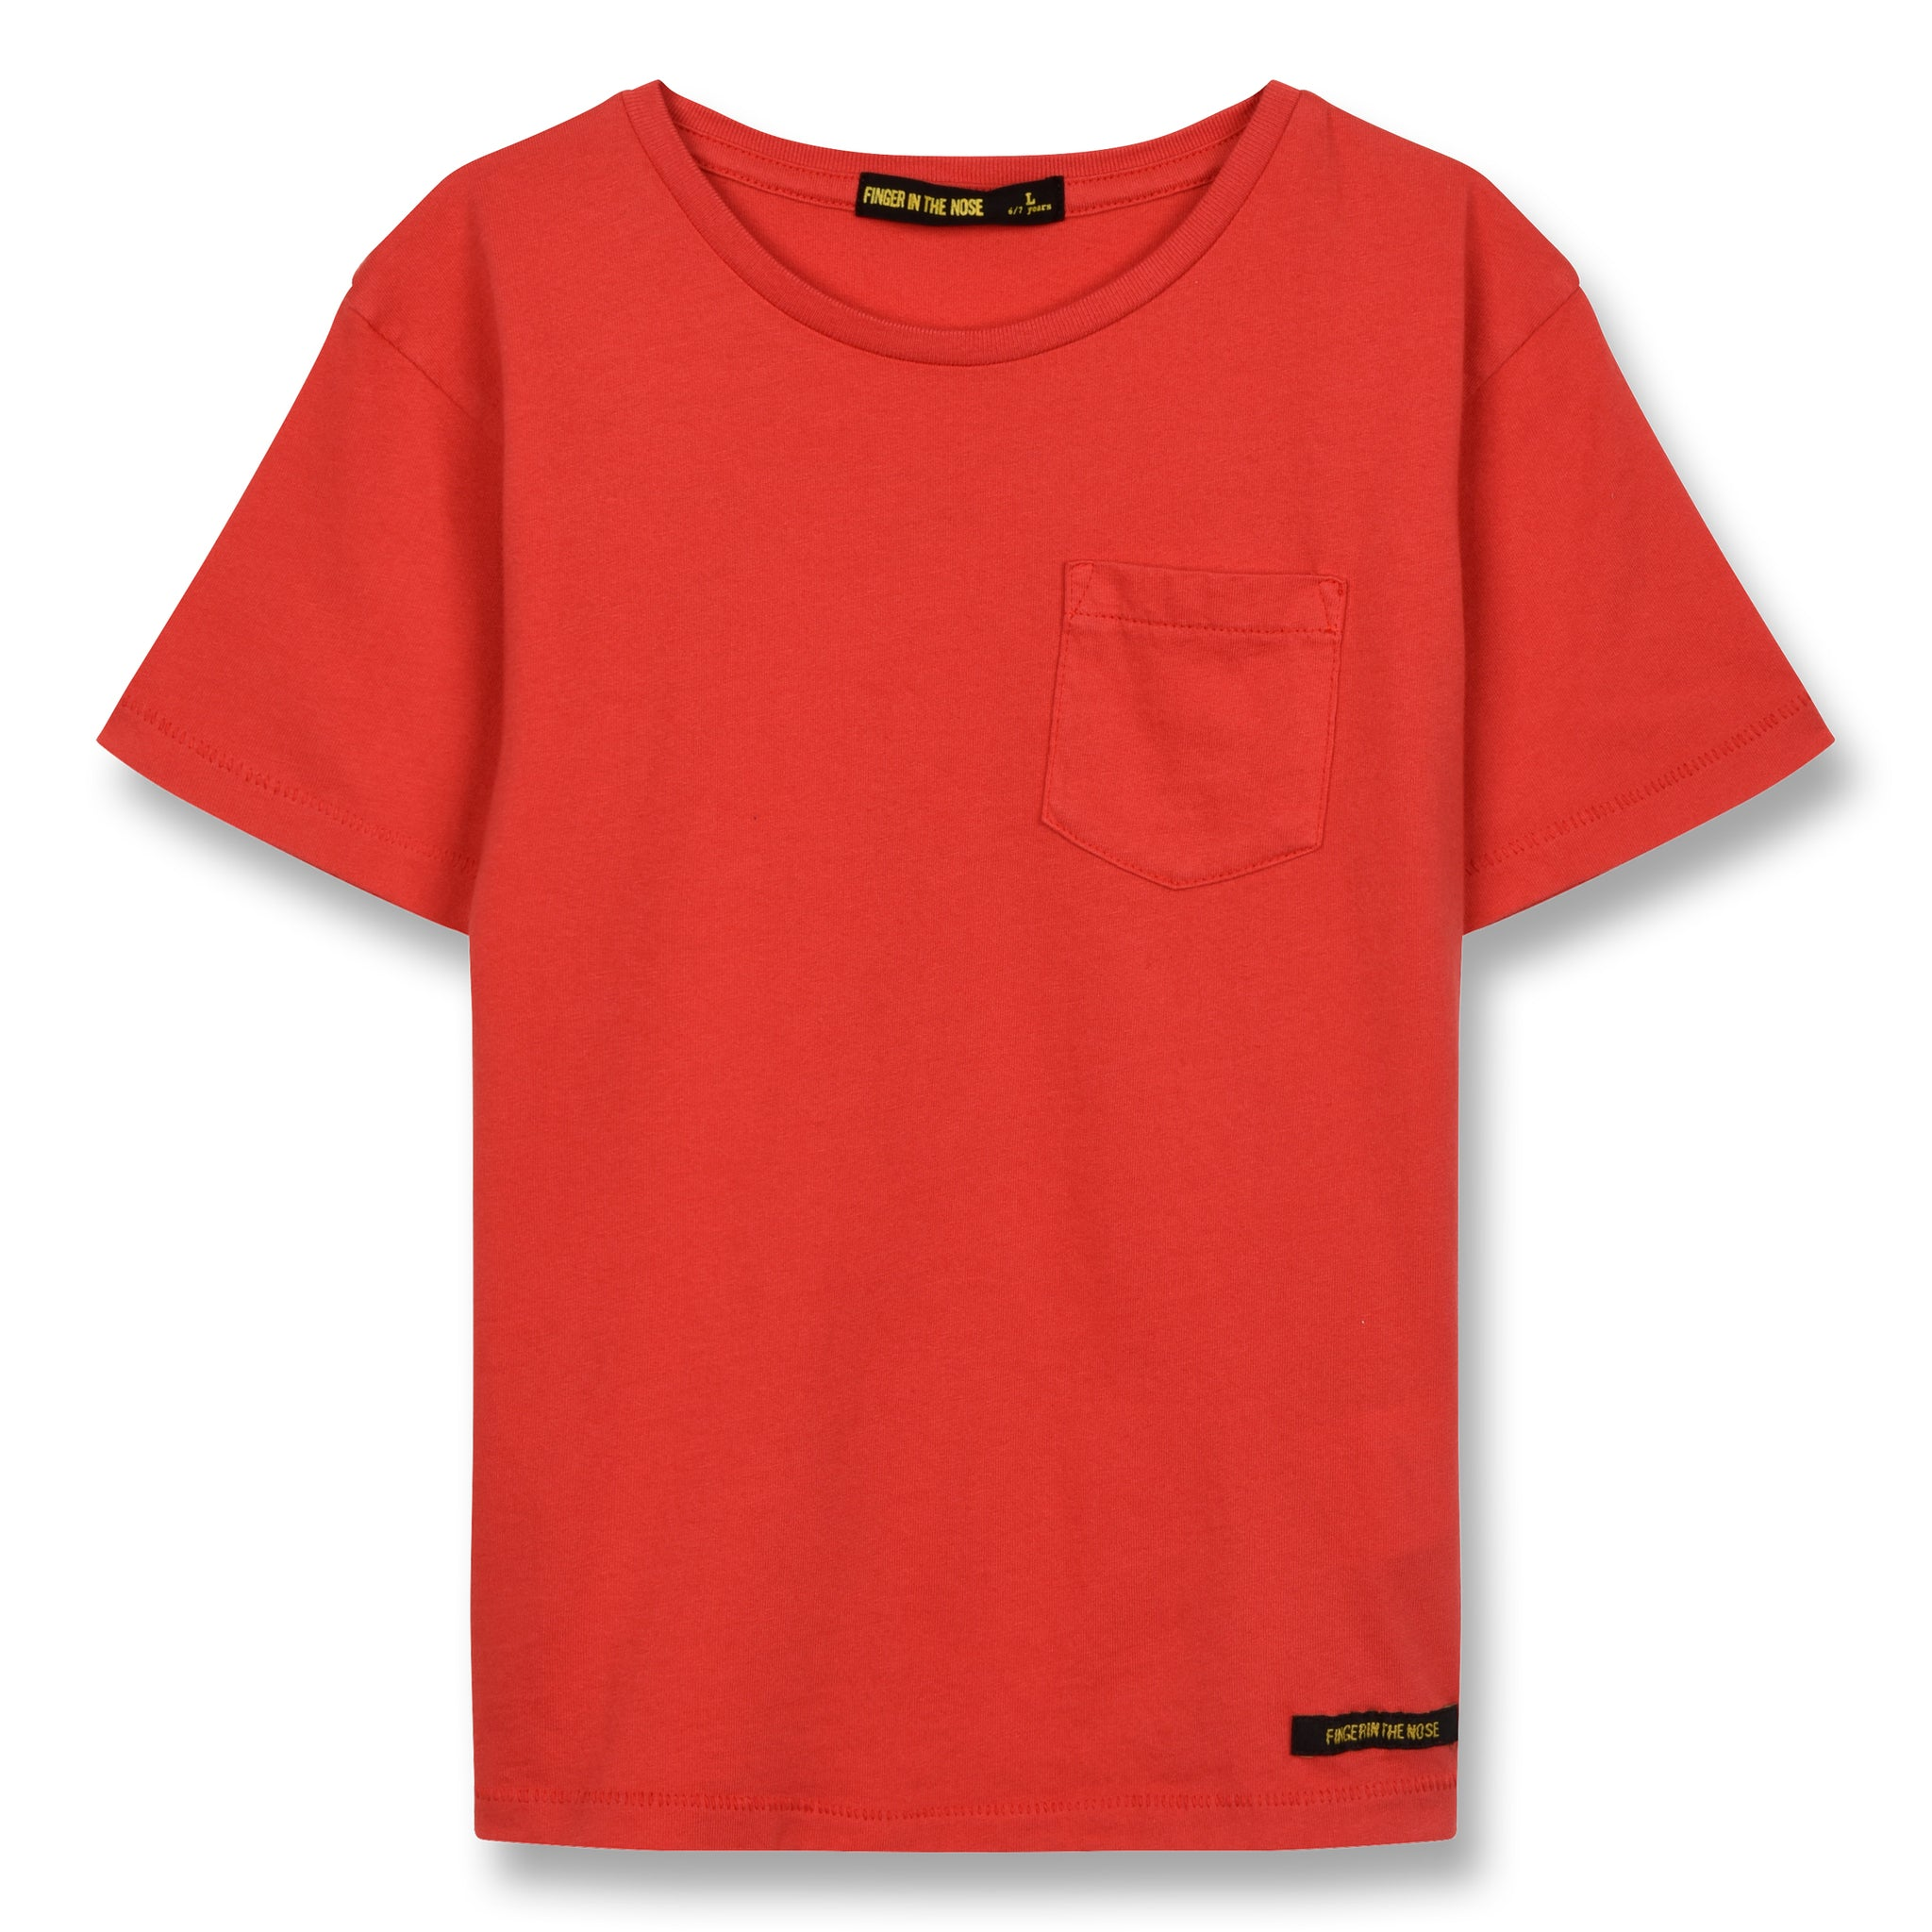 DALTON Poppy Red - Short Sleeves T-Shirt 1